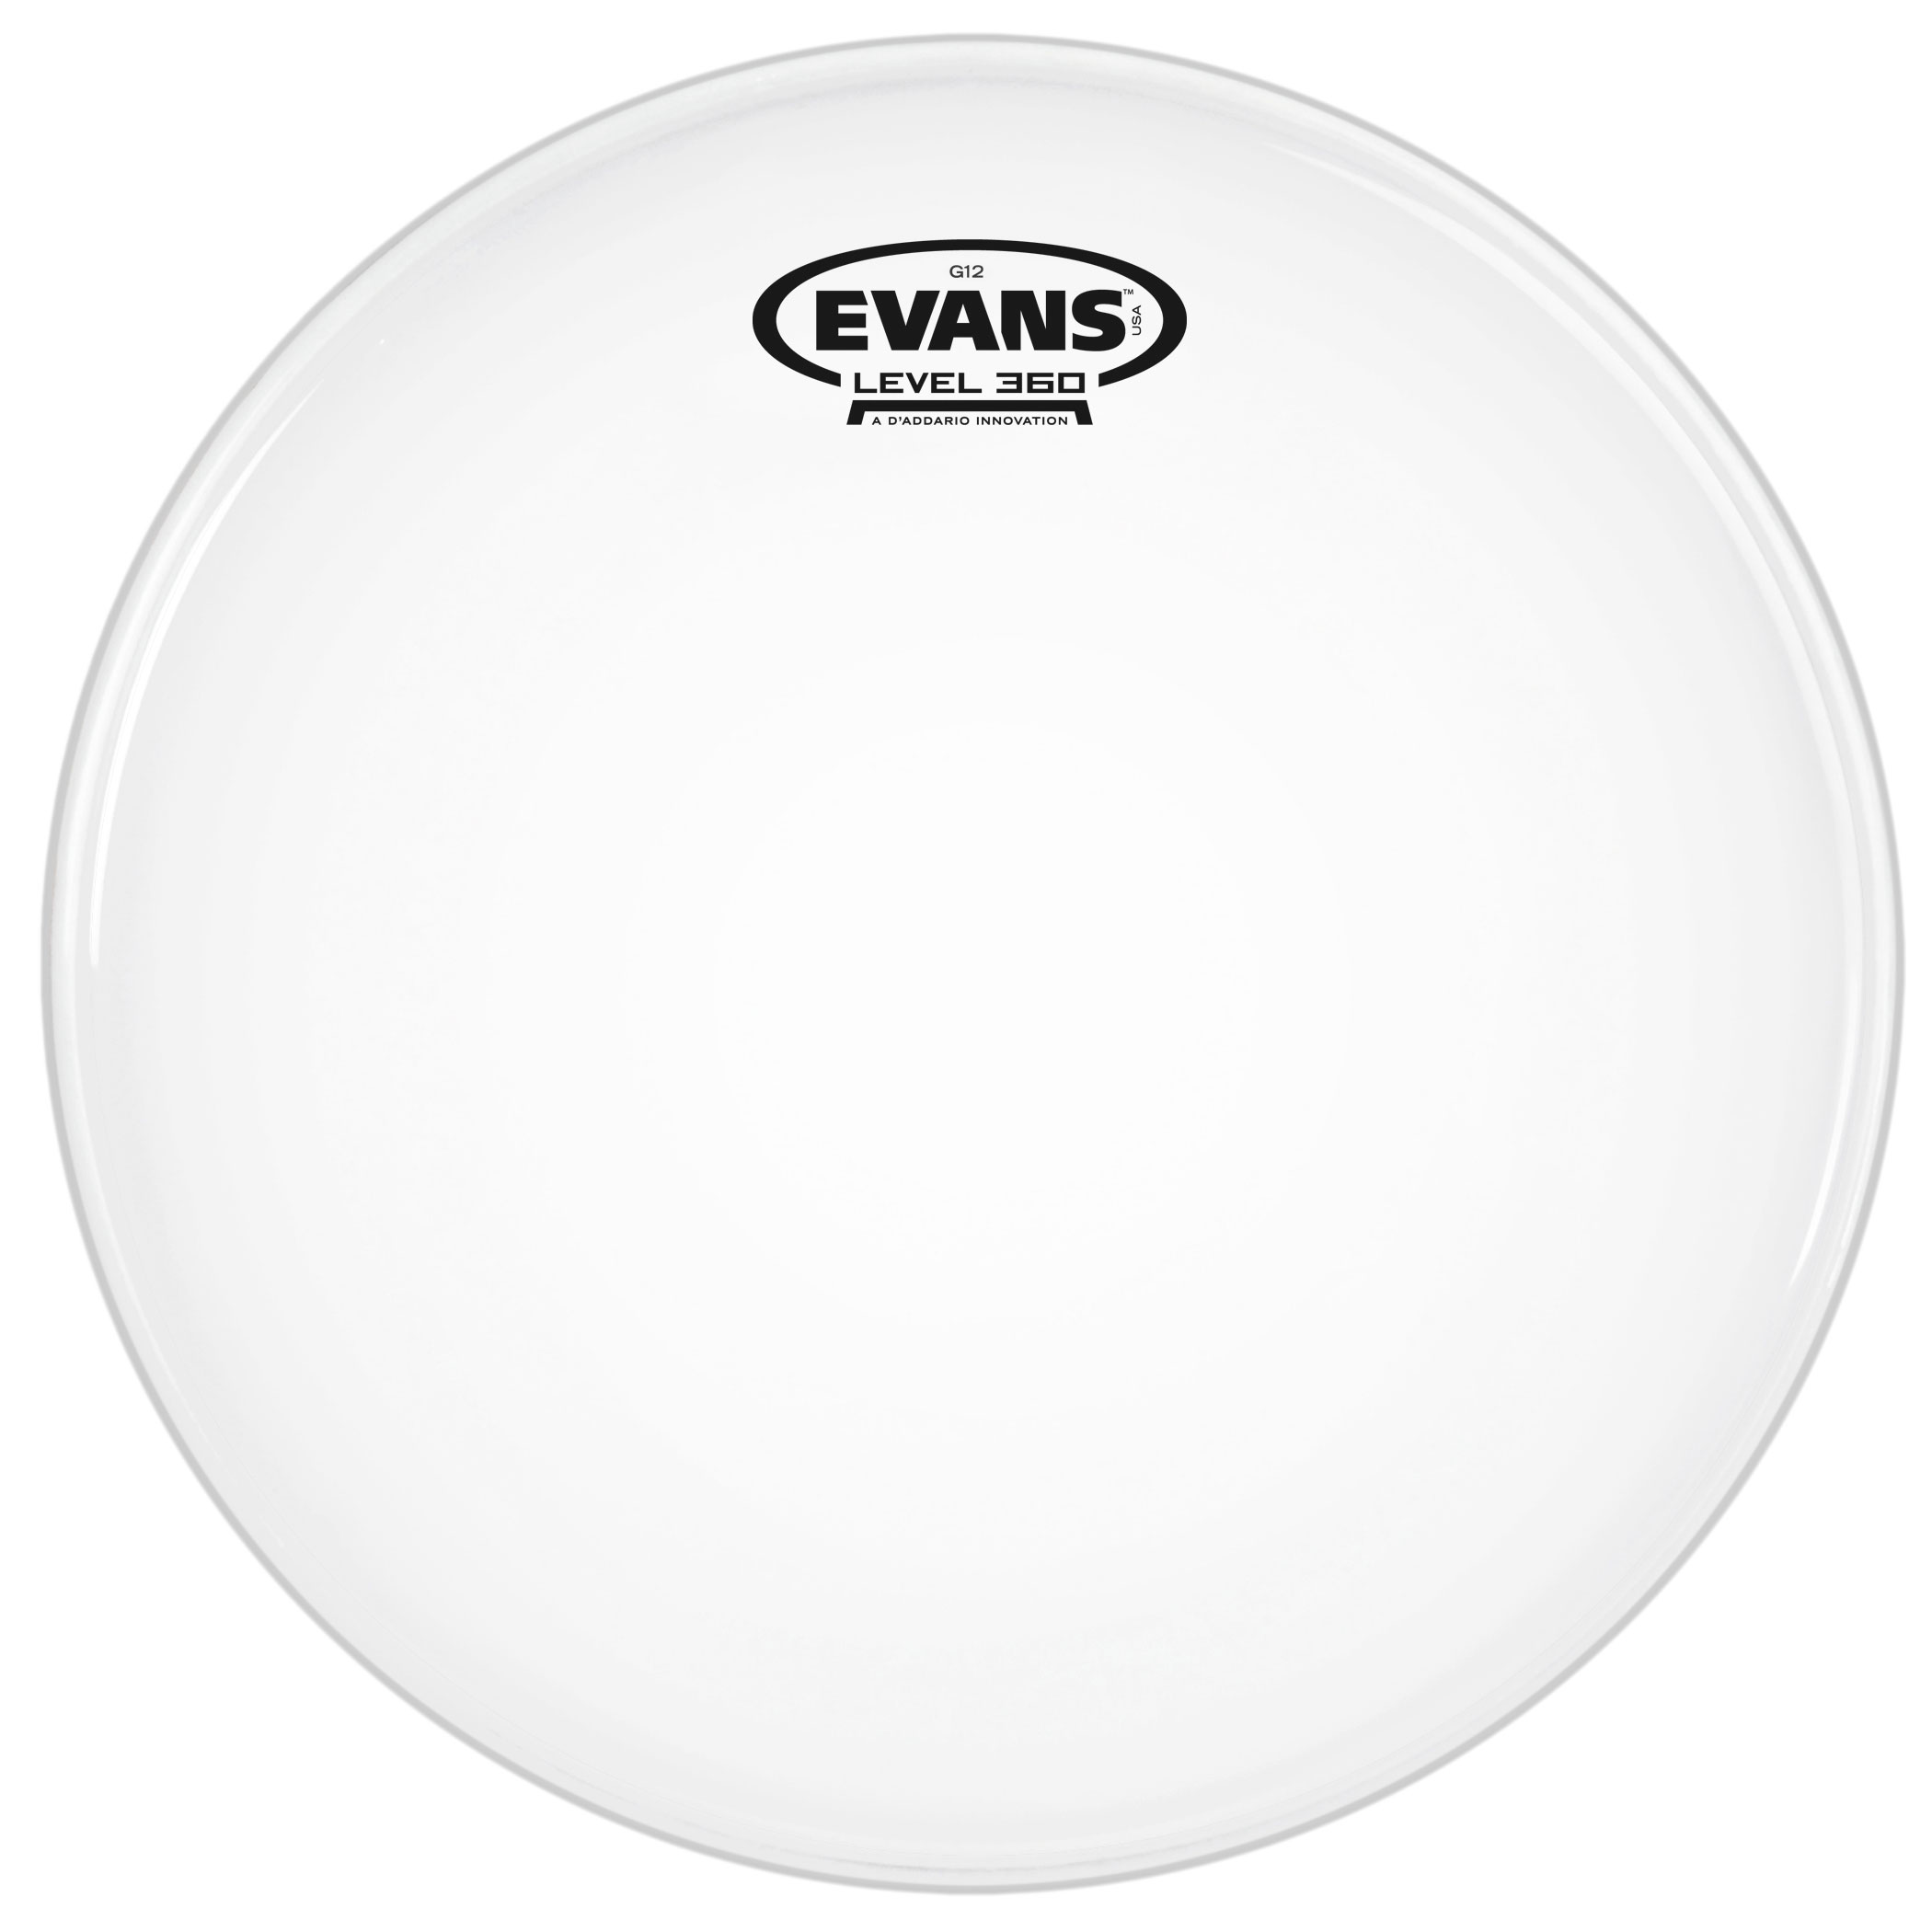 "Evans 14"" G12 Coated Head"